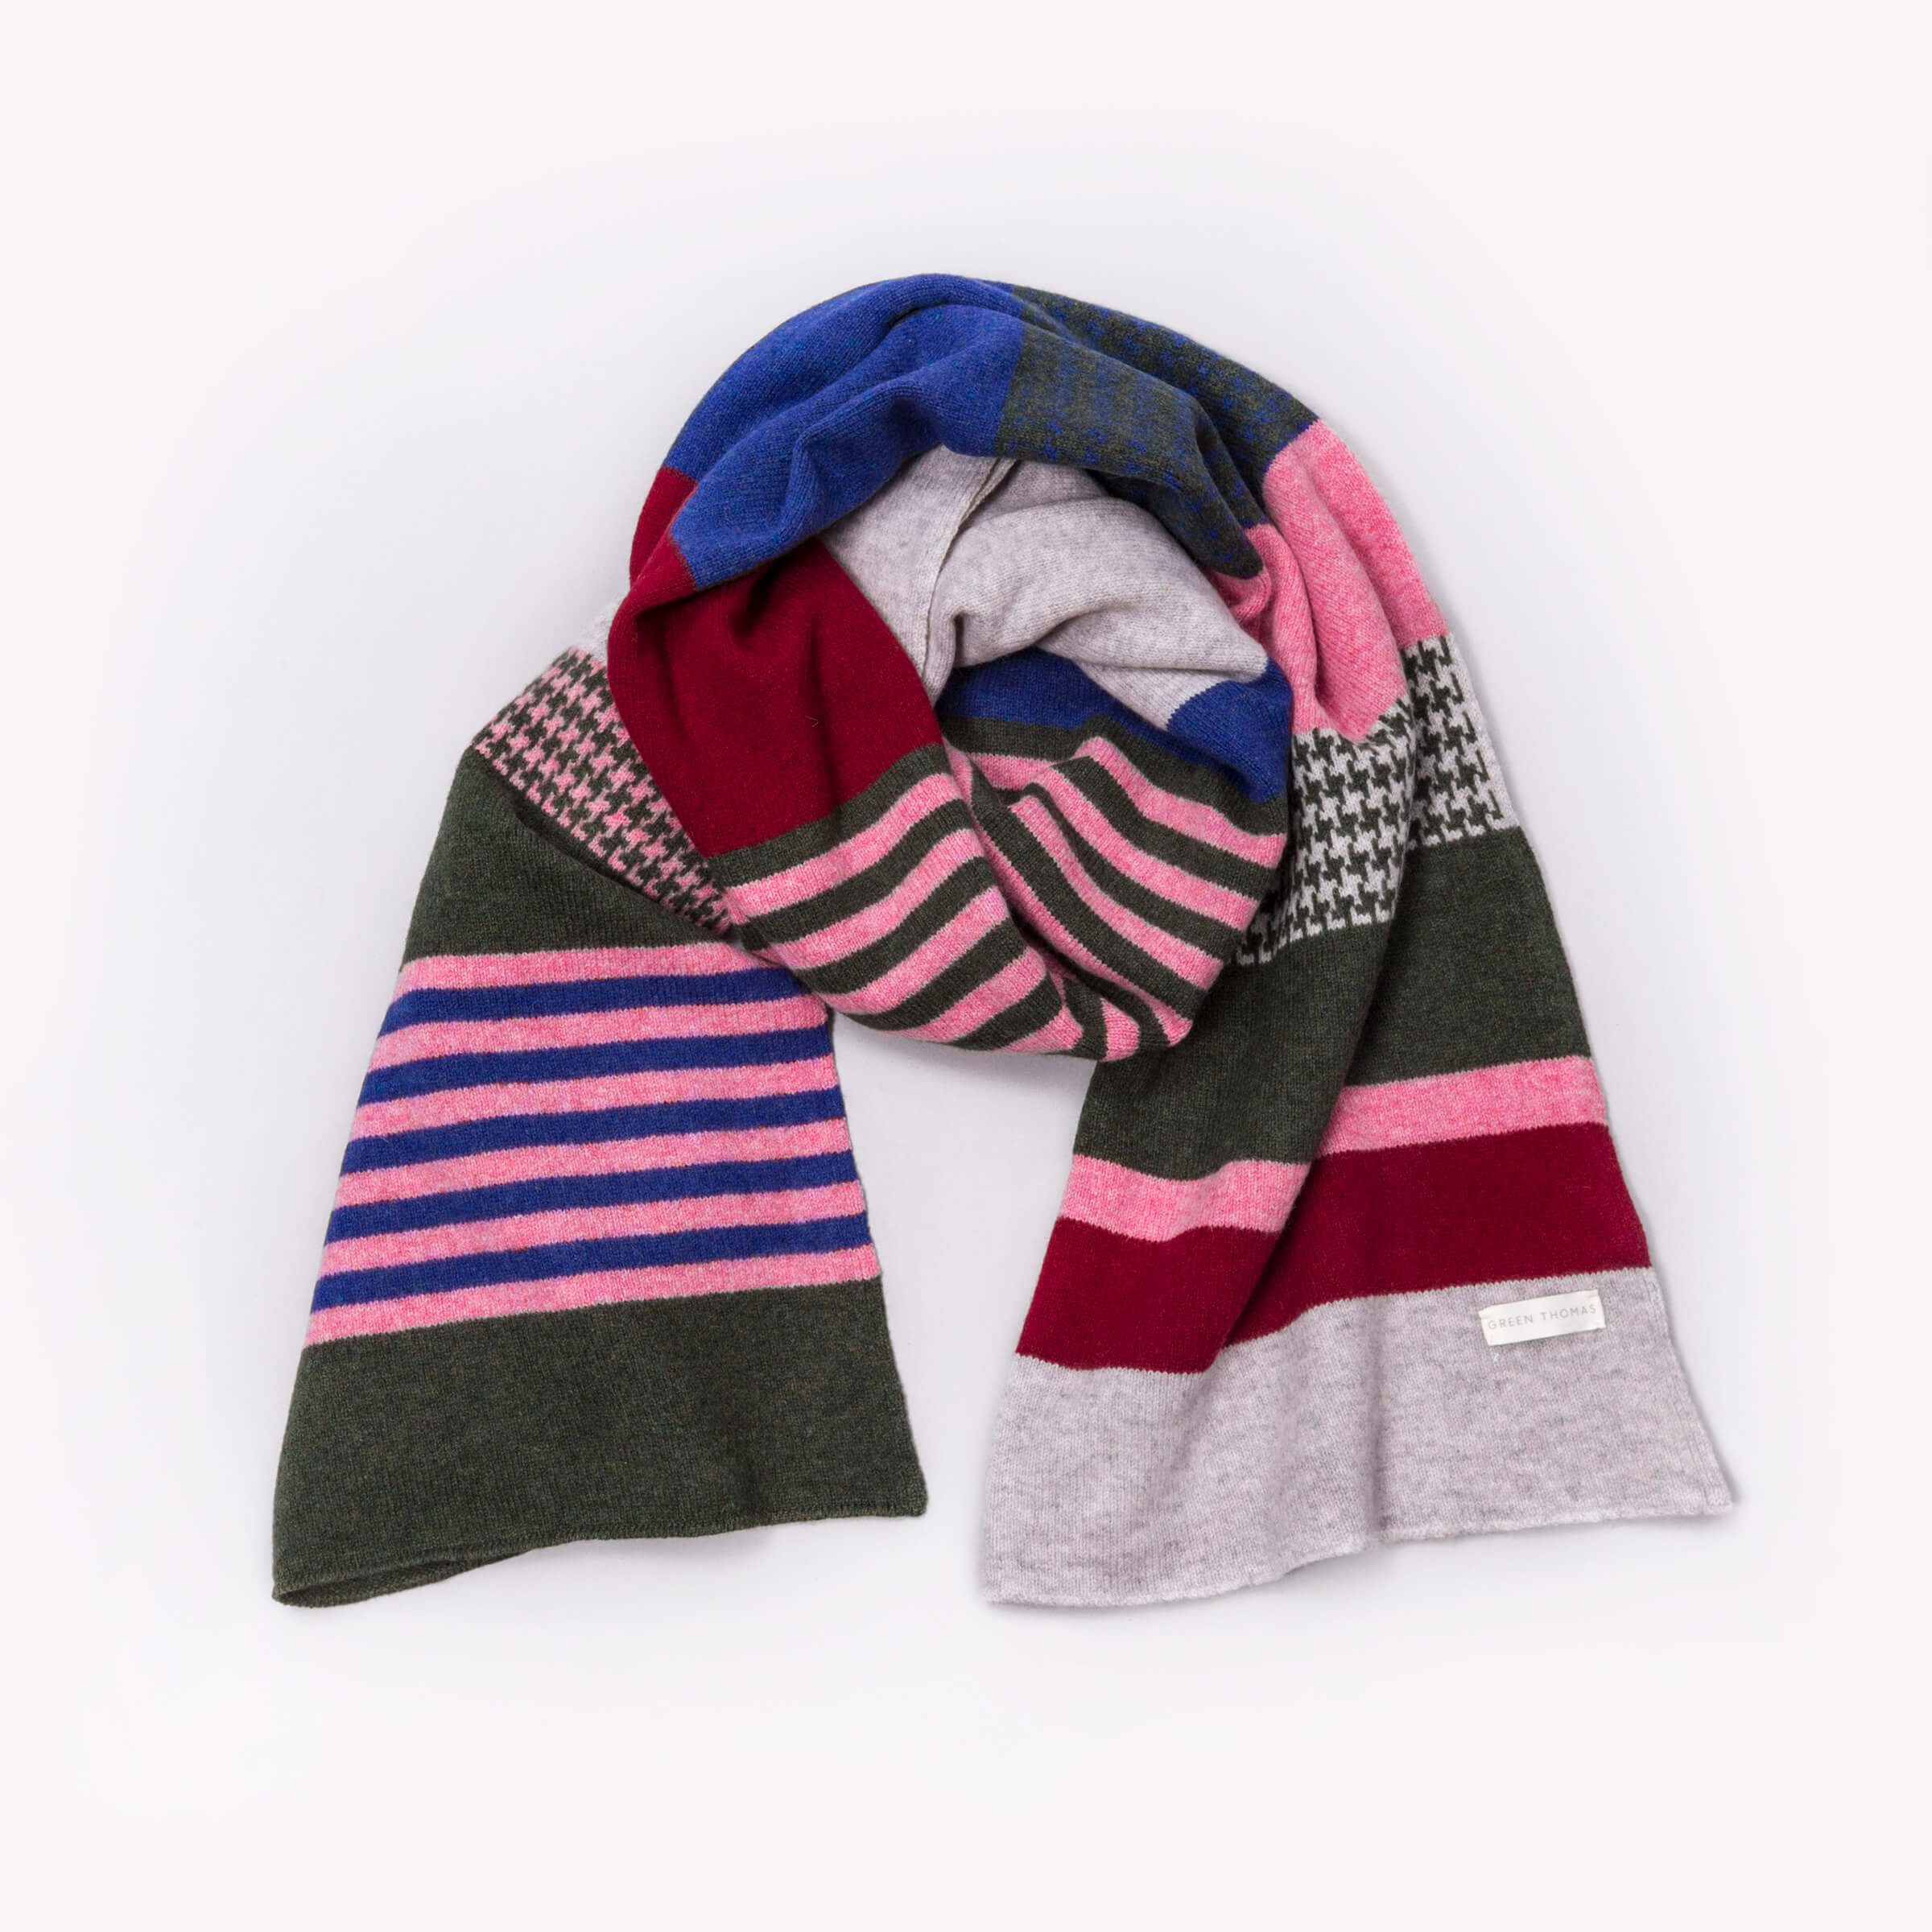 Local Heroes - Green Thomas - Blanket Scarves - Local Colourway - photo Studio RoRo